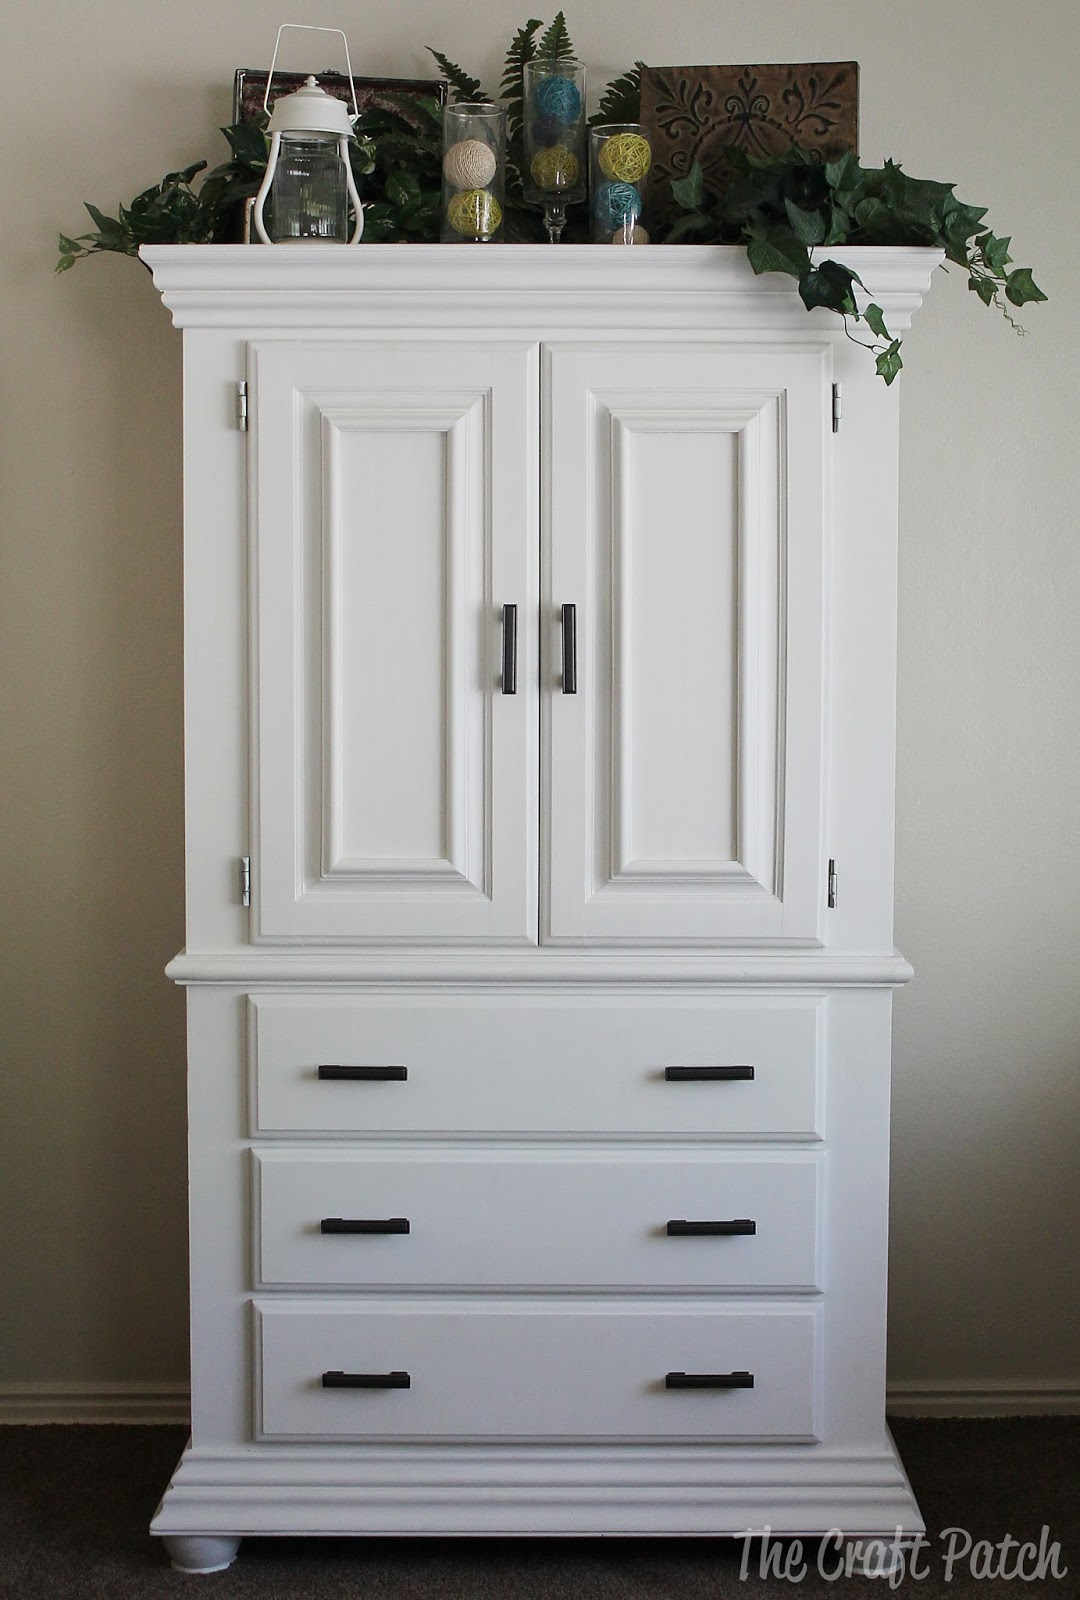 The Craft Patch The Glorious Fabric Storage Armoire